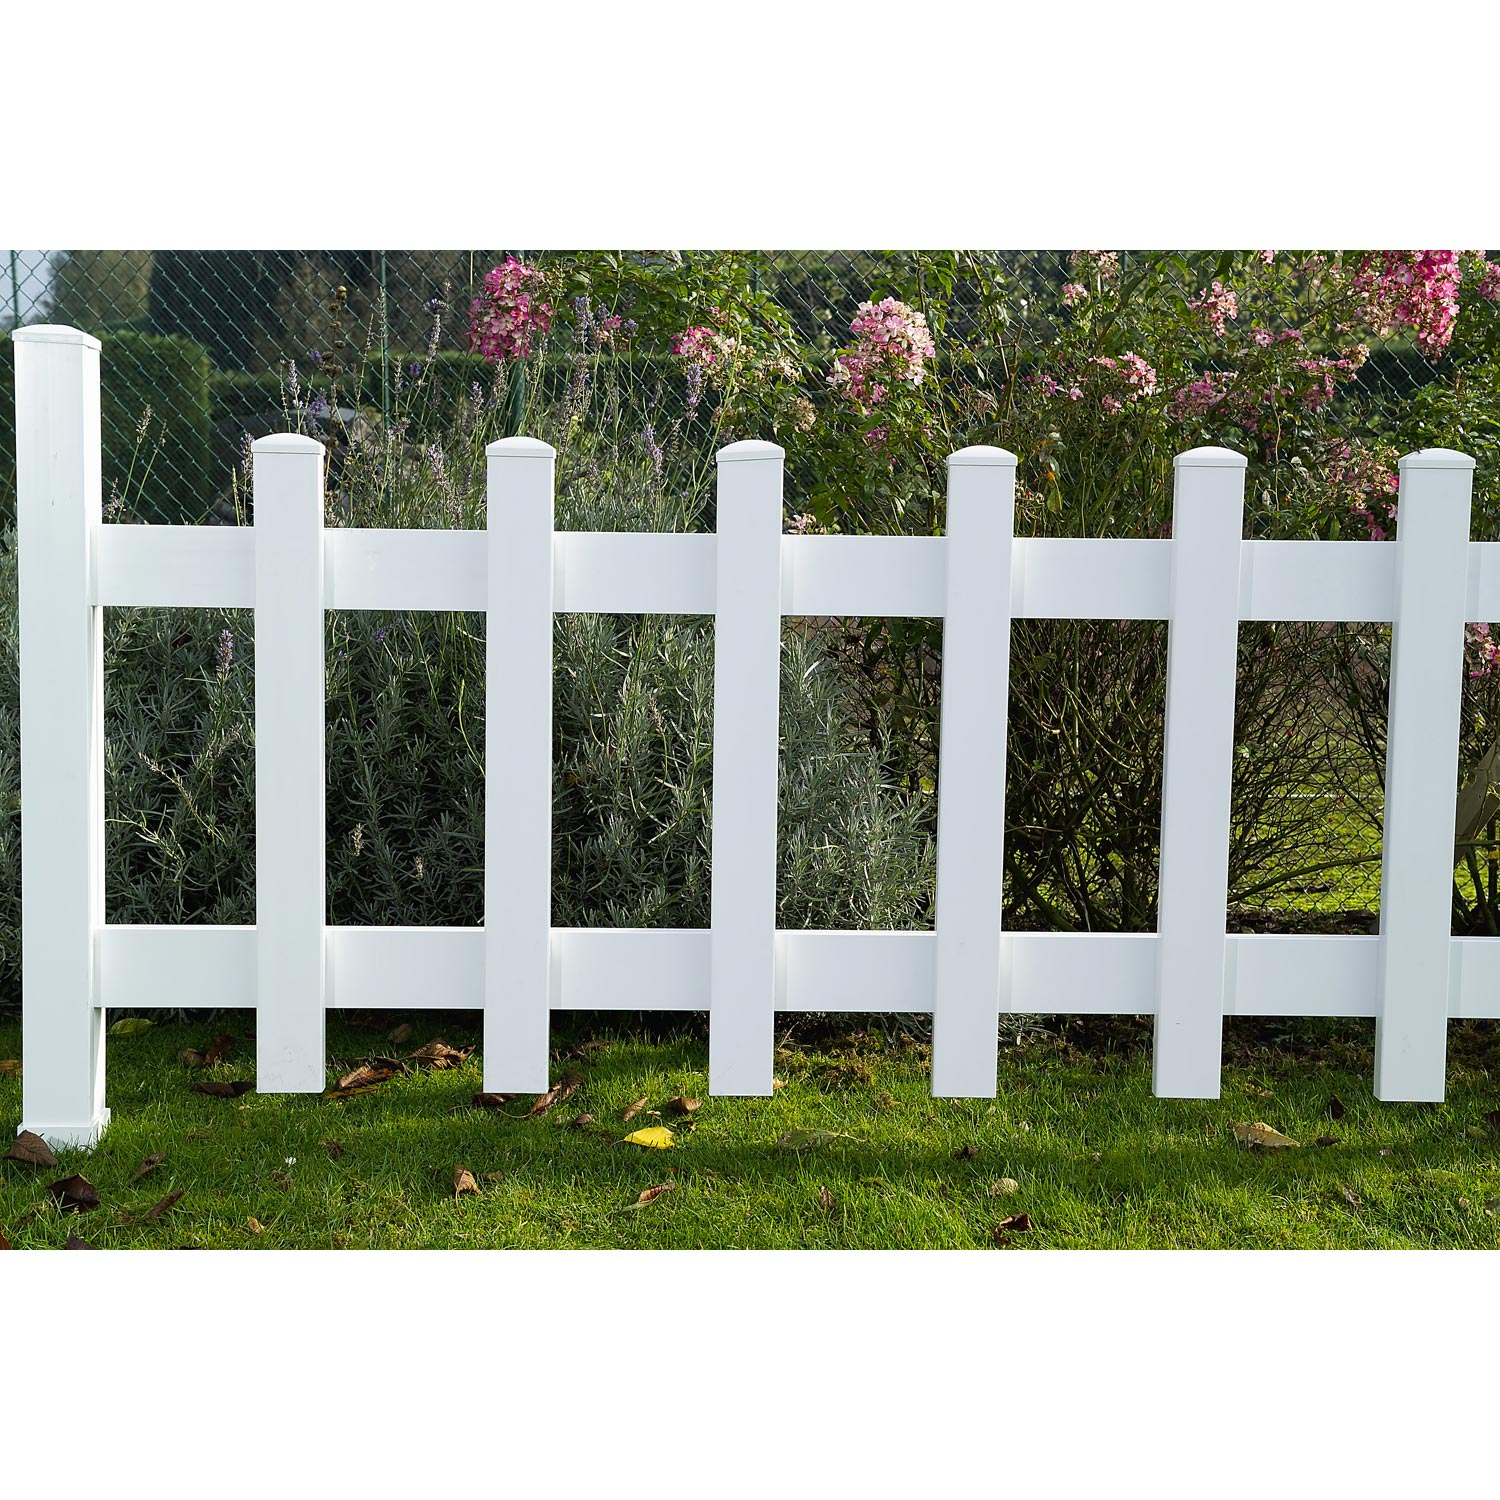 Traverse de cl ture de 120 cm leroy merlin - Cloture jardin leroy merlin ...